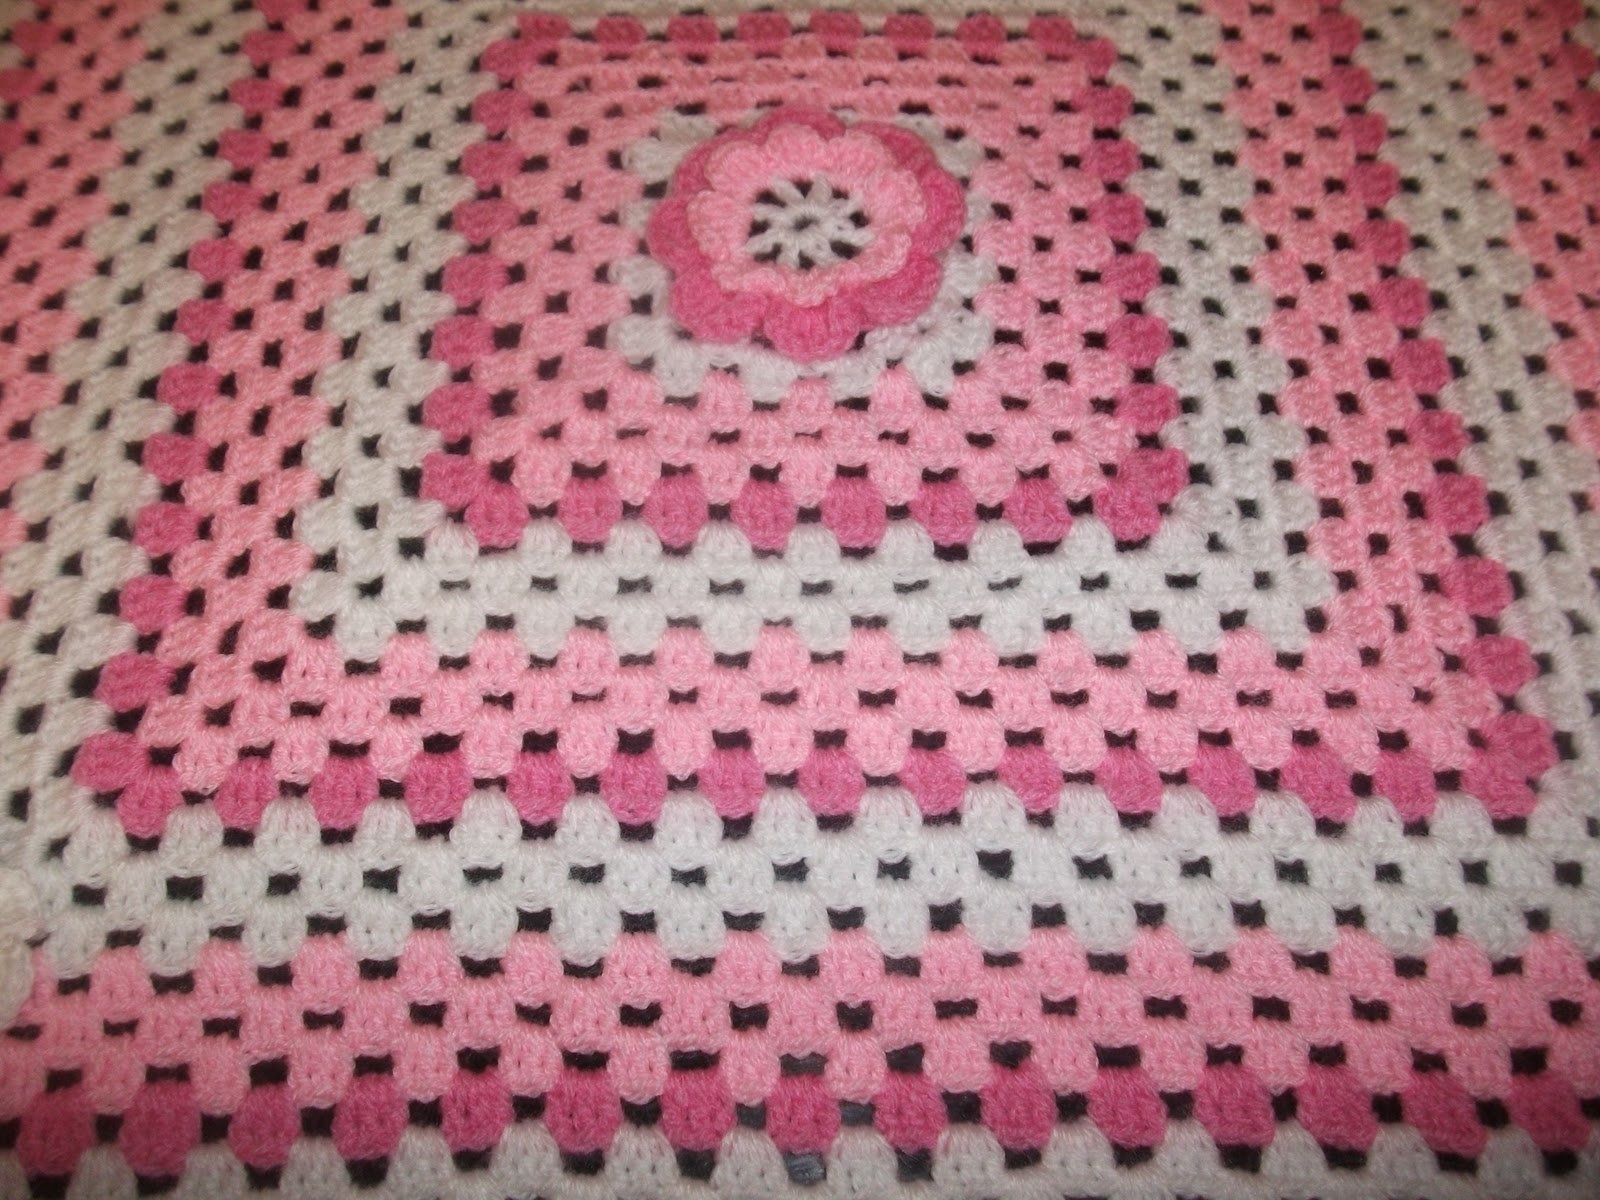 Easy Crochet Baby Blanket Patterns Free For Beginners : Helens Colourful Crochet Blankets: New baby girl pink ...